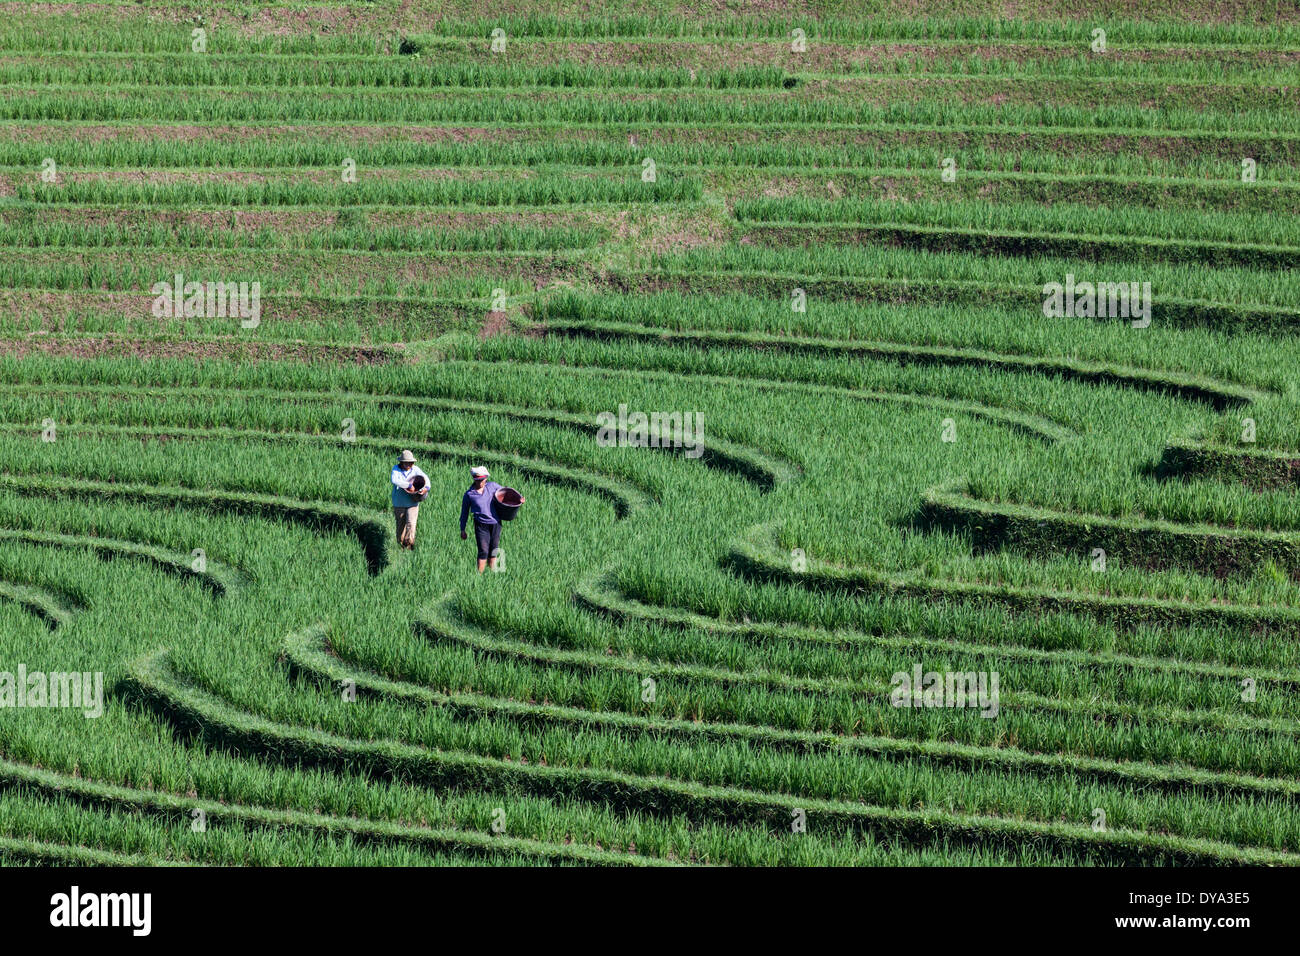 Two people working on rice field in region of Antosari and Belimbing, near the road from Antosari to Pupuan, Bali, Indonesia - Stock Image